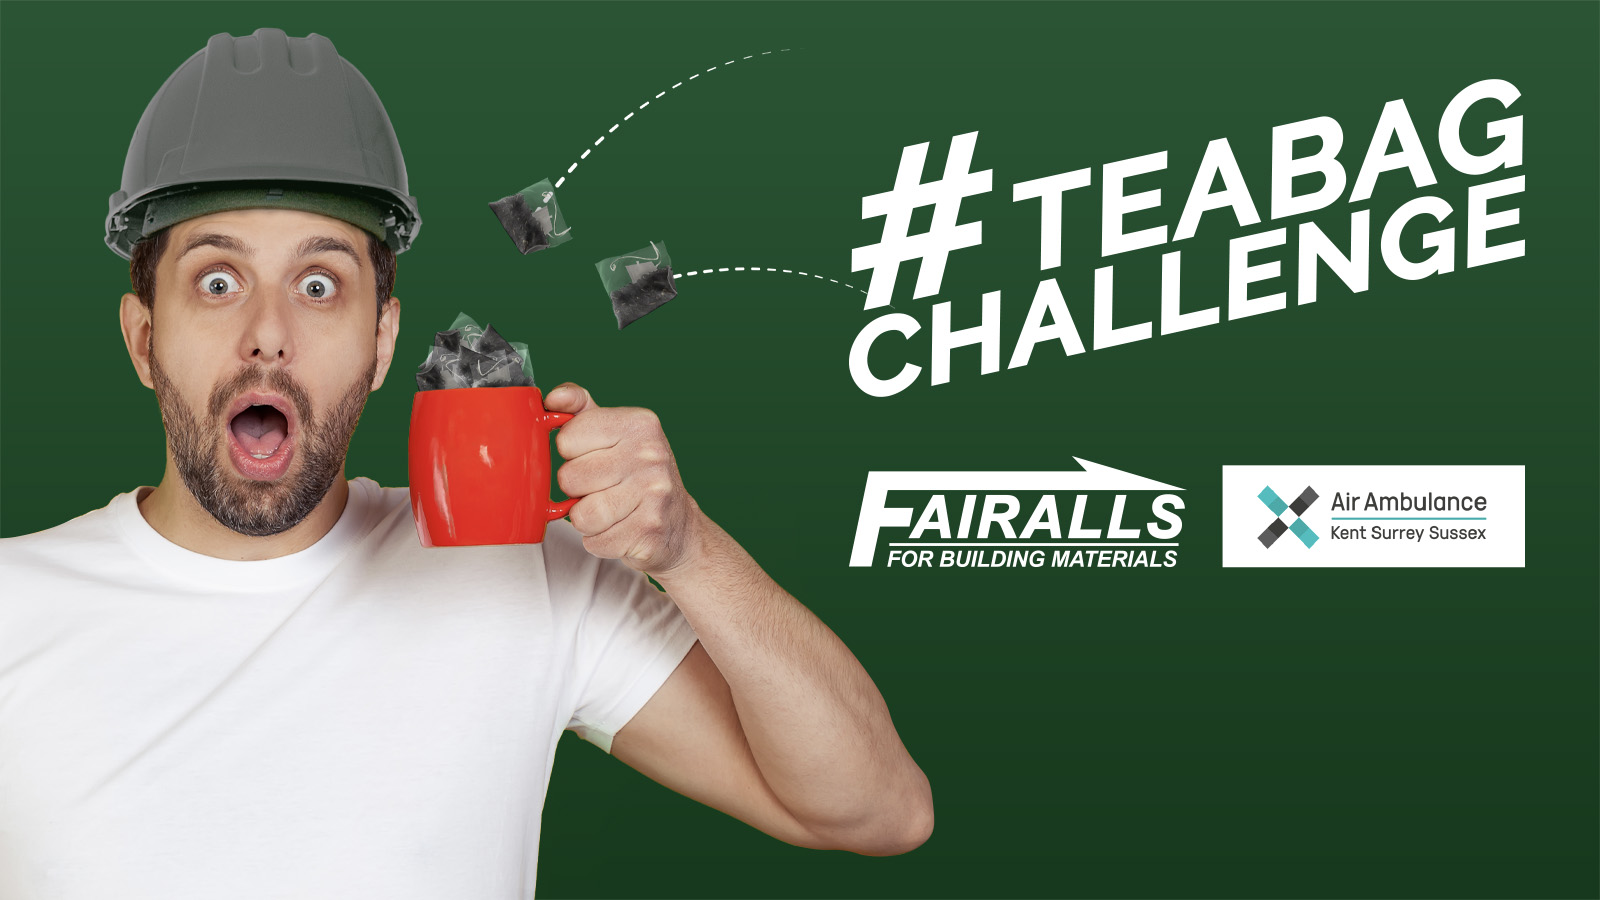 Will You Take on the #TeaBagChallenge for Air Ambulance Kent Surrey Sussex?